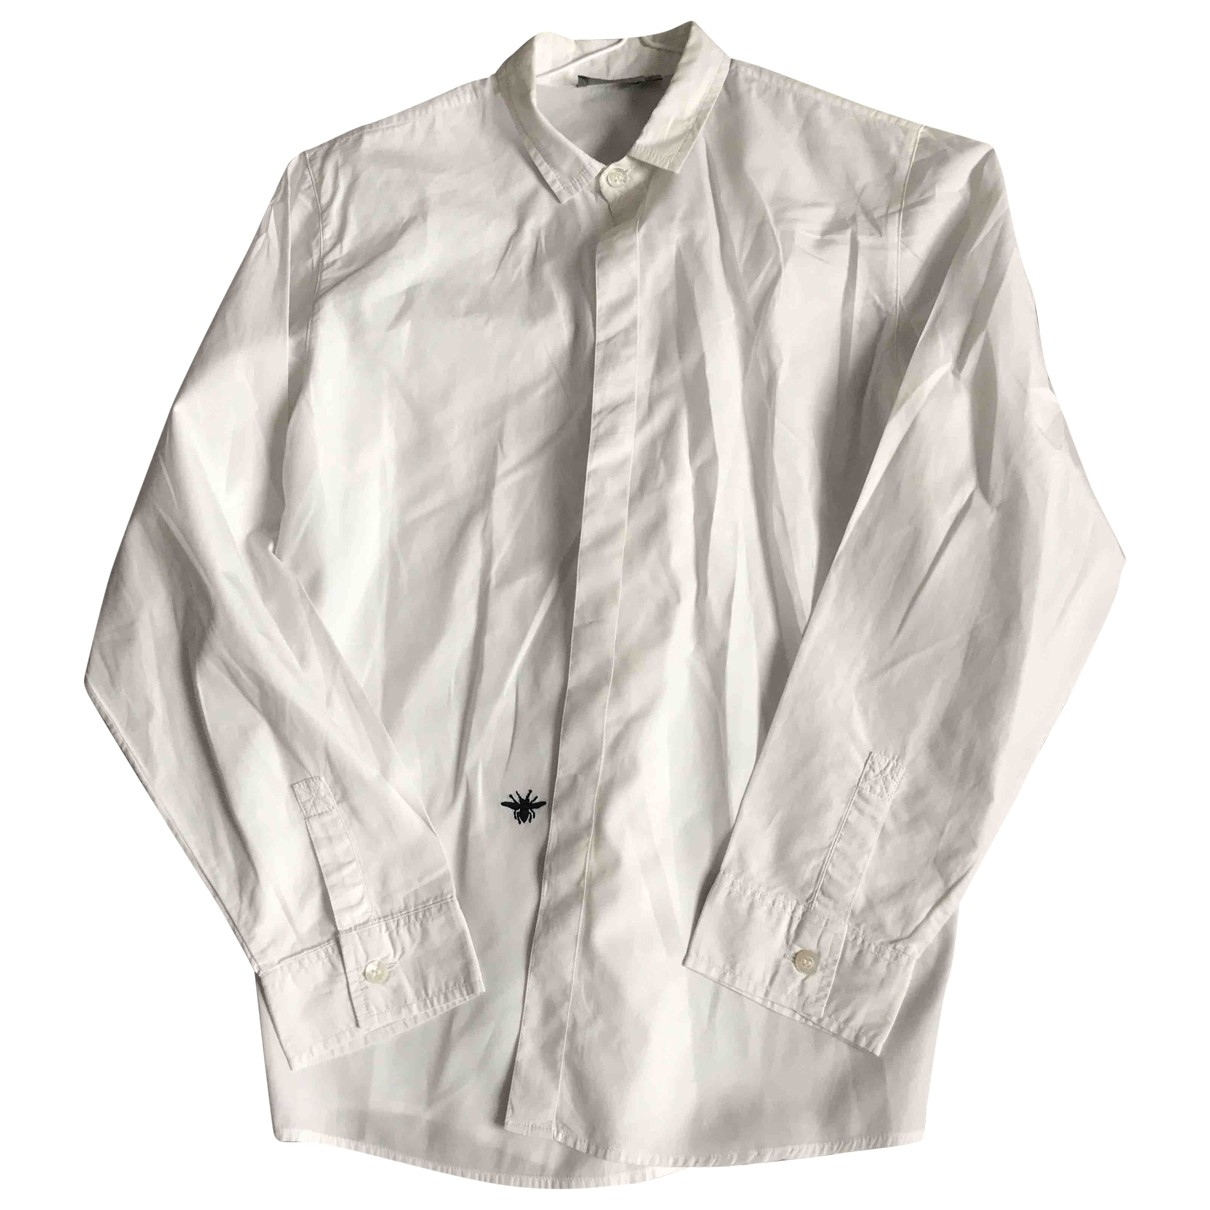 Dior \N White Cotton  top for Kids 12 years - XS FR